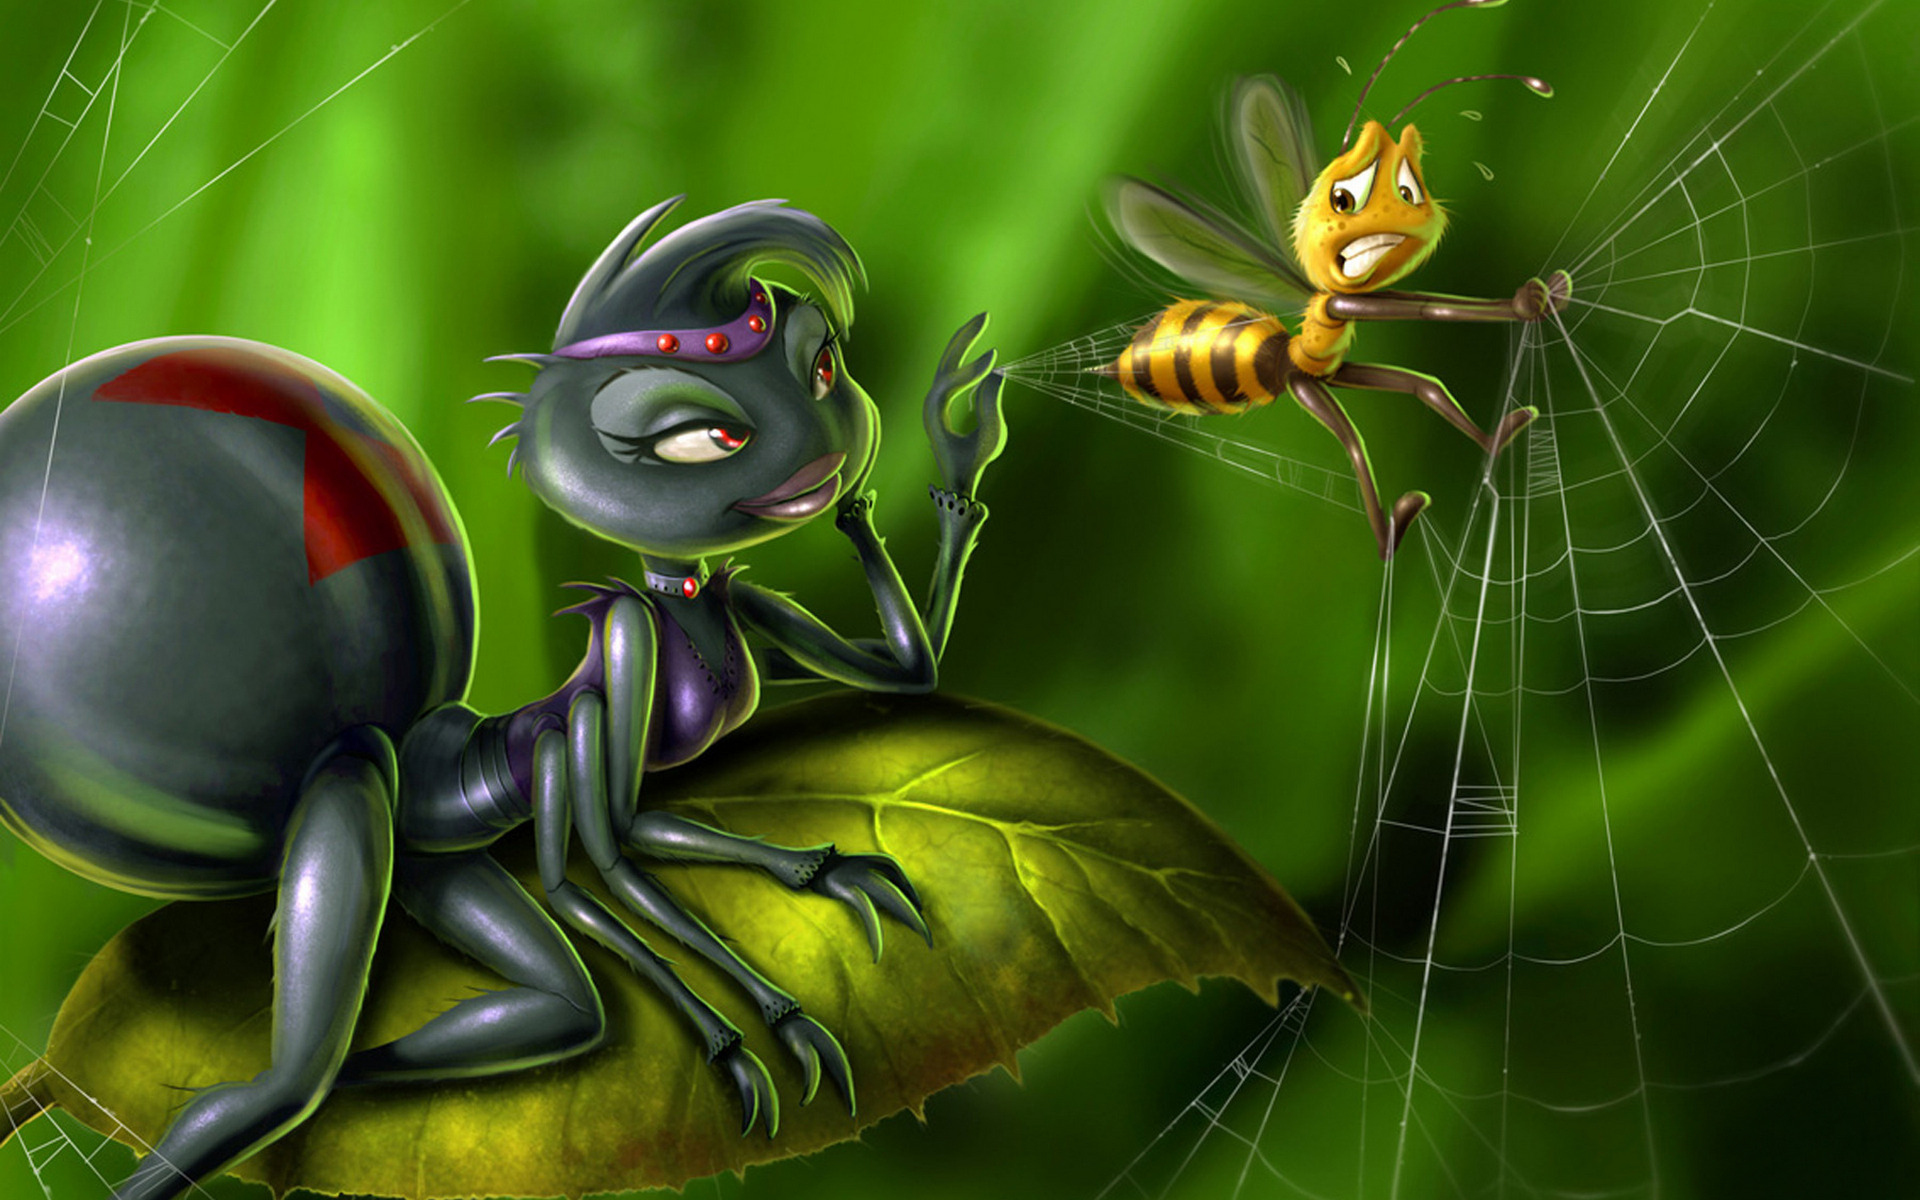 funny spider web 3d wallpaper in hd